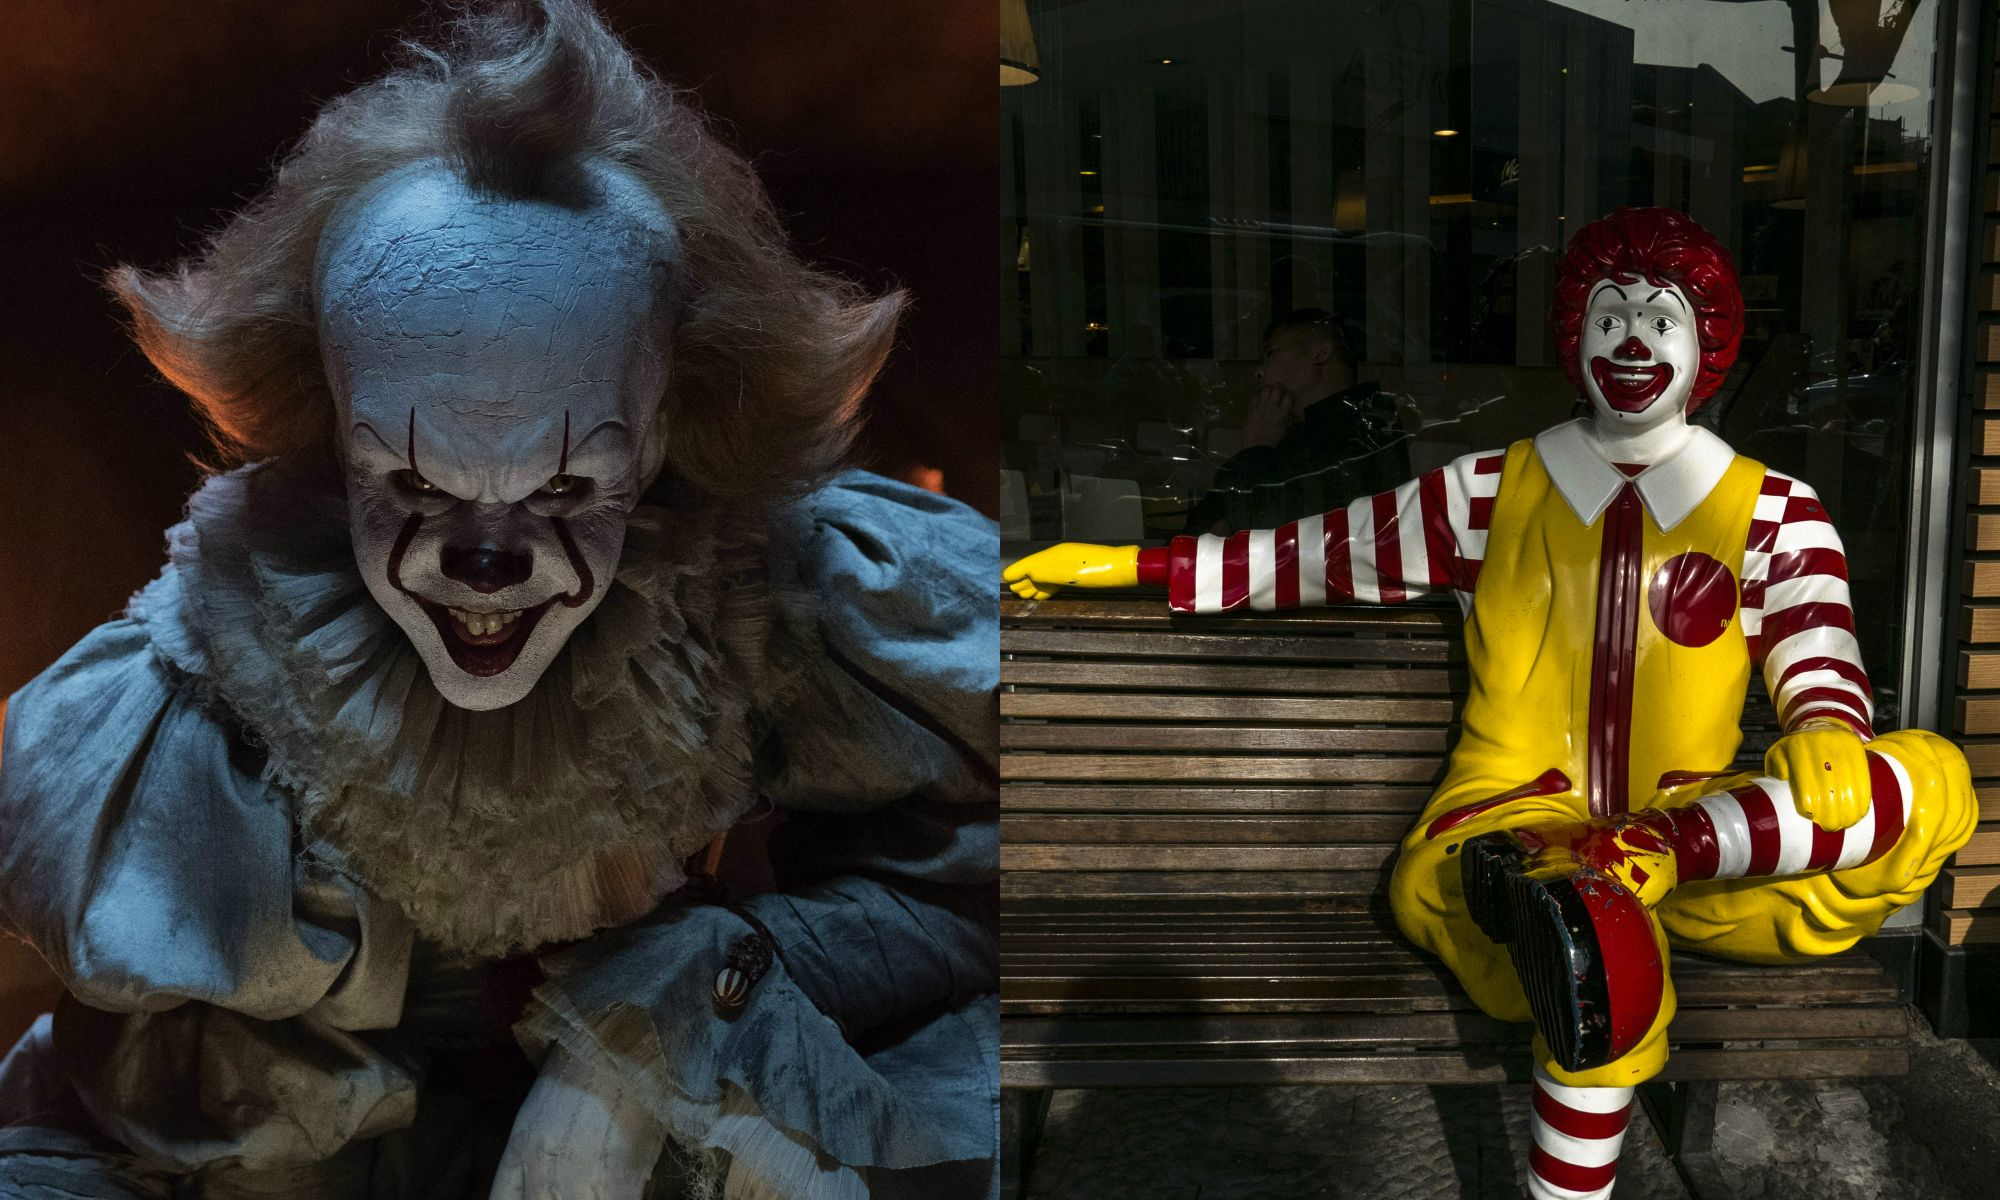 Burger King Russia Wants 'It' Movie Banned Because Pennywise the